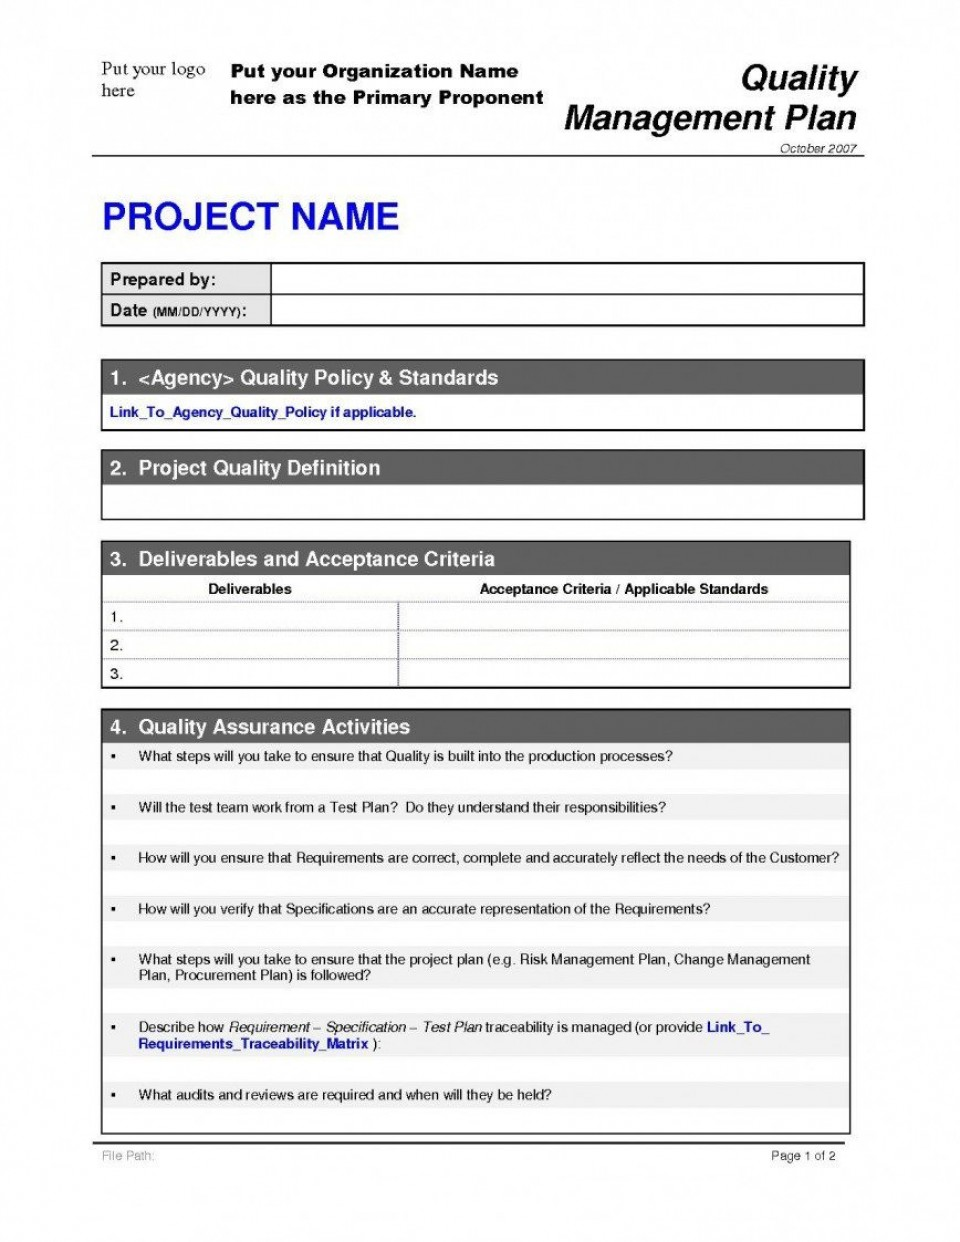 008 Striking Project Management Plan Template Pmi Picture  Quality Pmbok960